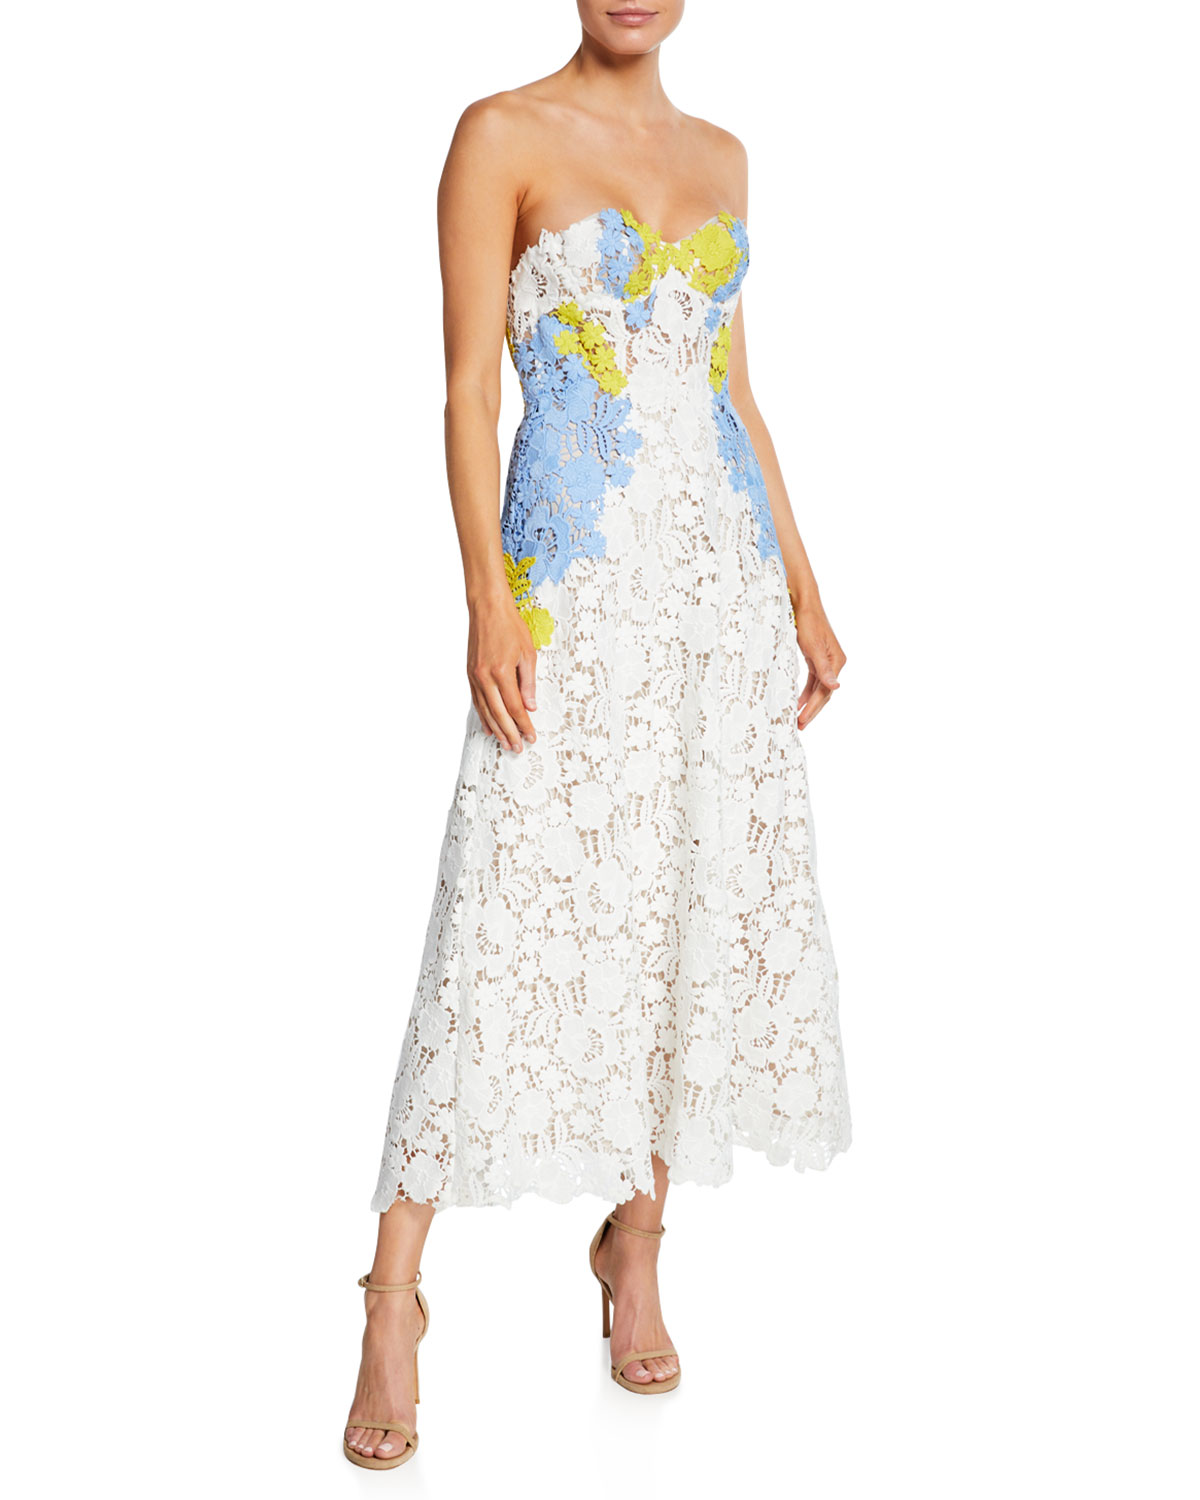 Lela Rose Lace Bustier Strapless Dress | Neiman Marcus